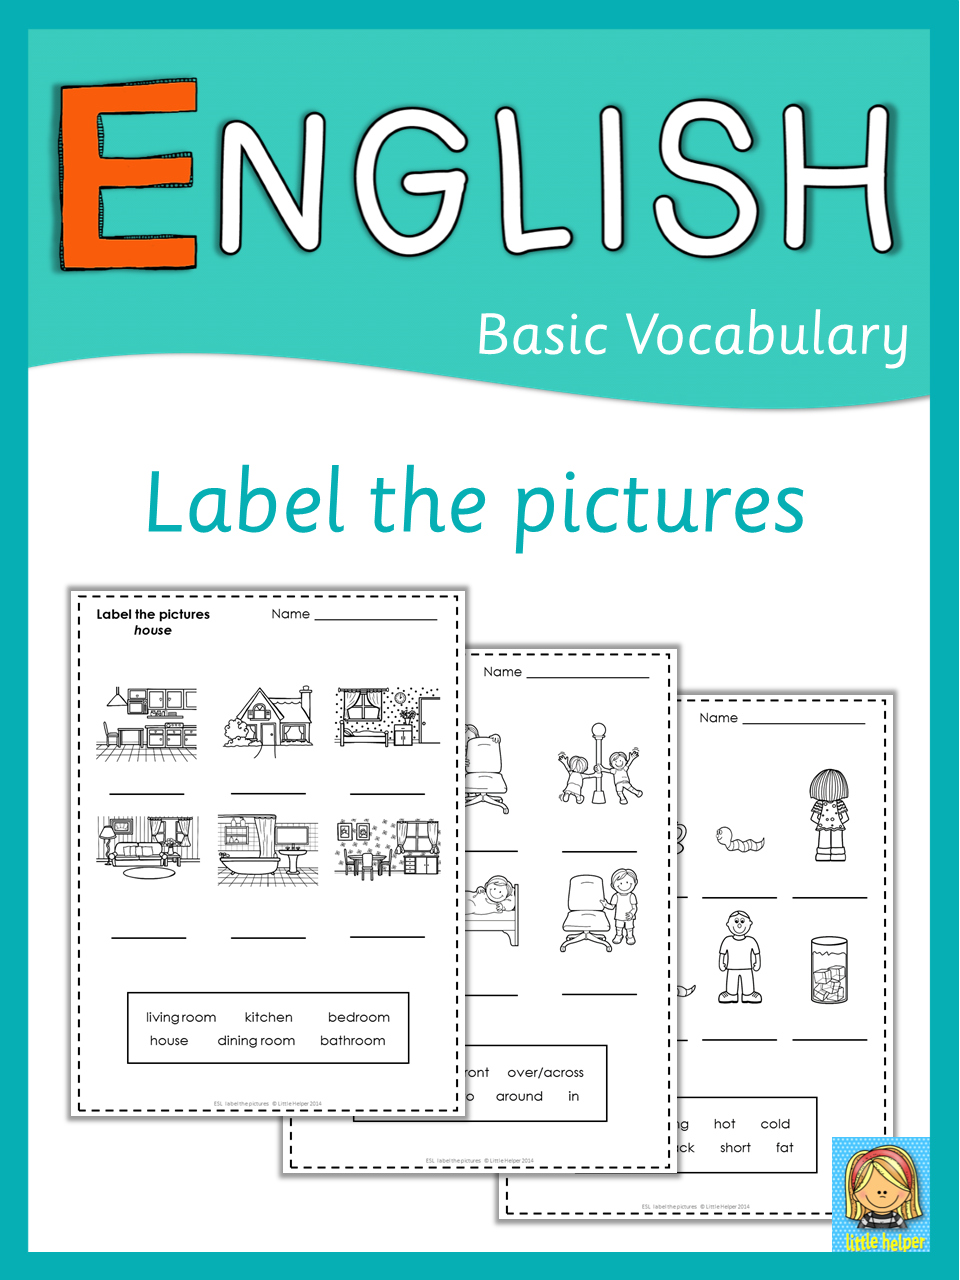 ESL label the pictures | Art lessons, Language arts and Teaching ideas